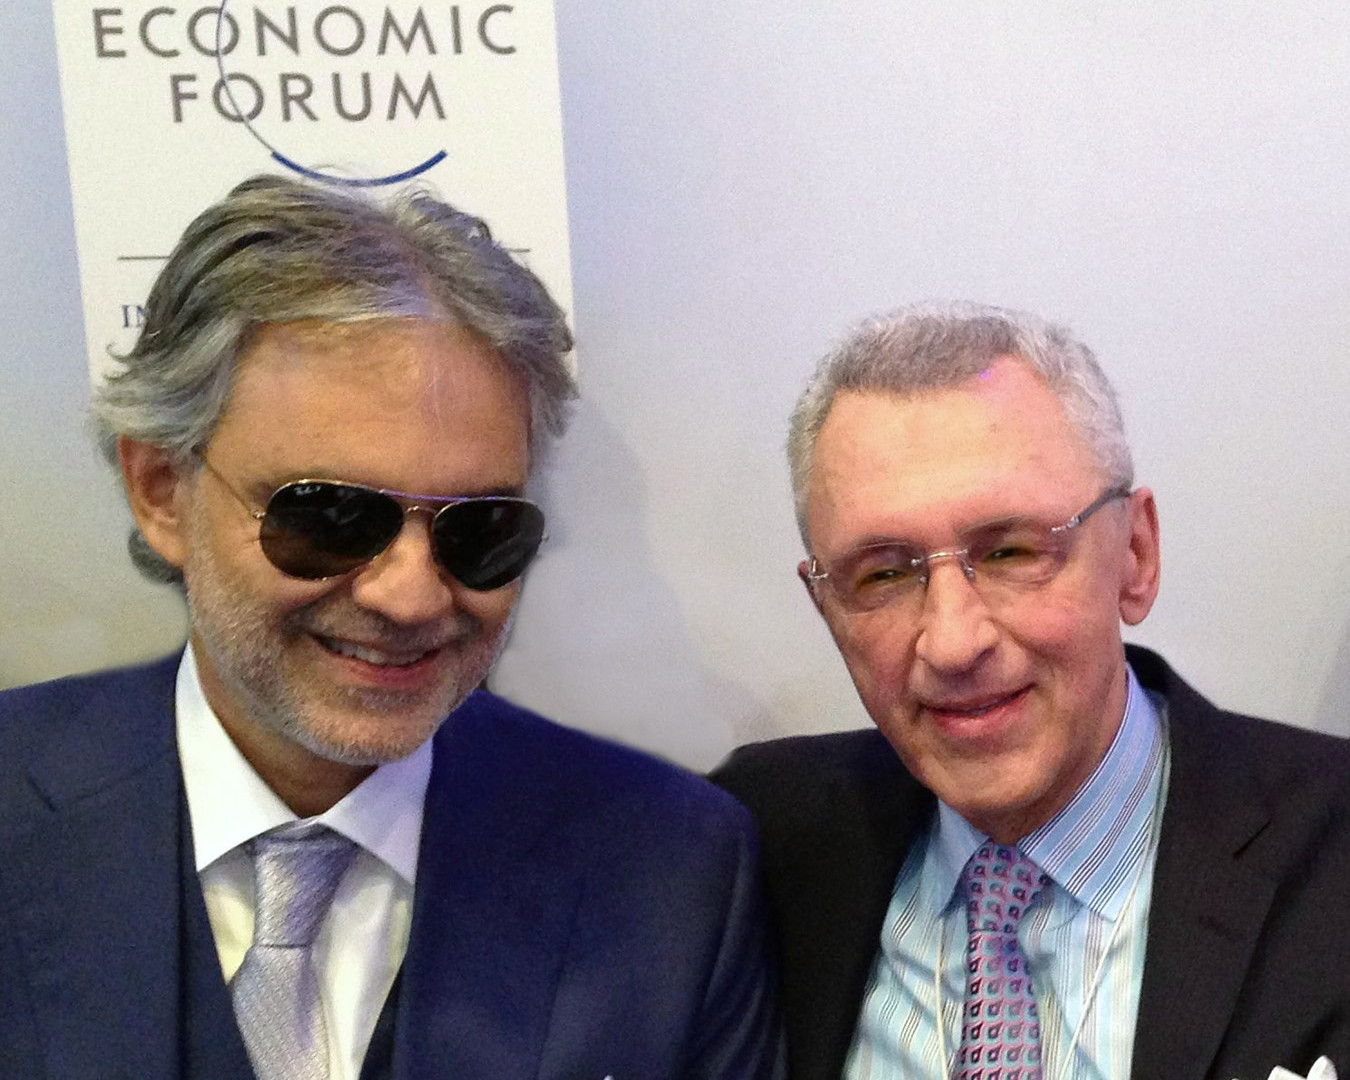 Sandy with the celebrated blind tenor Andrea Bocelli at the World Economic Forum in Davos, Switzerland, 2015.